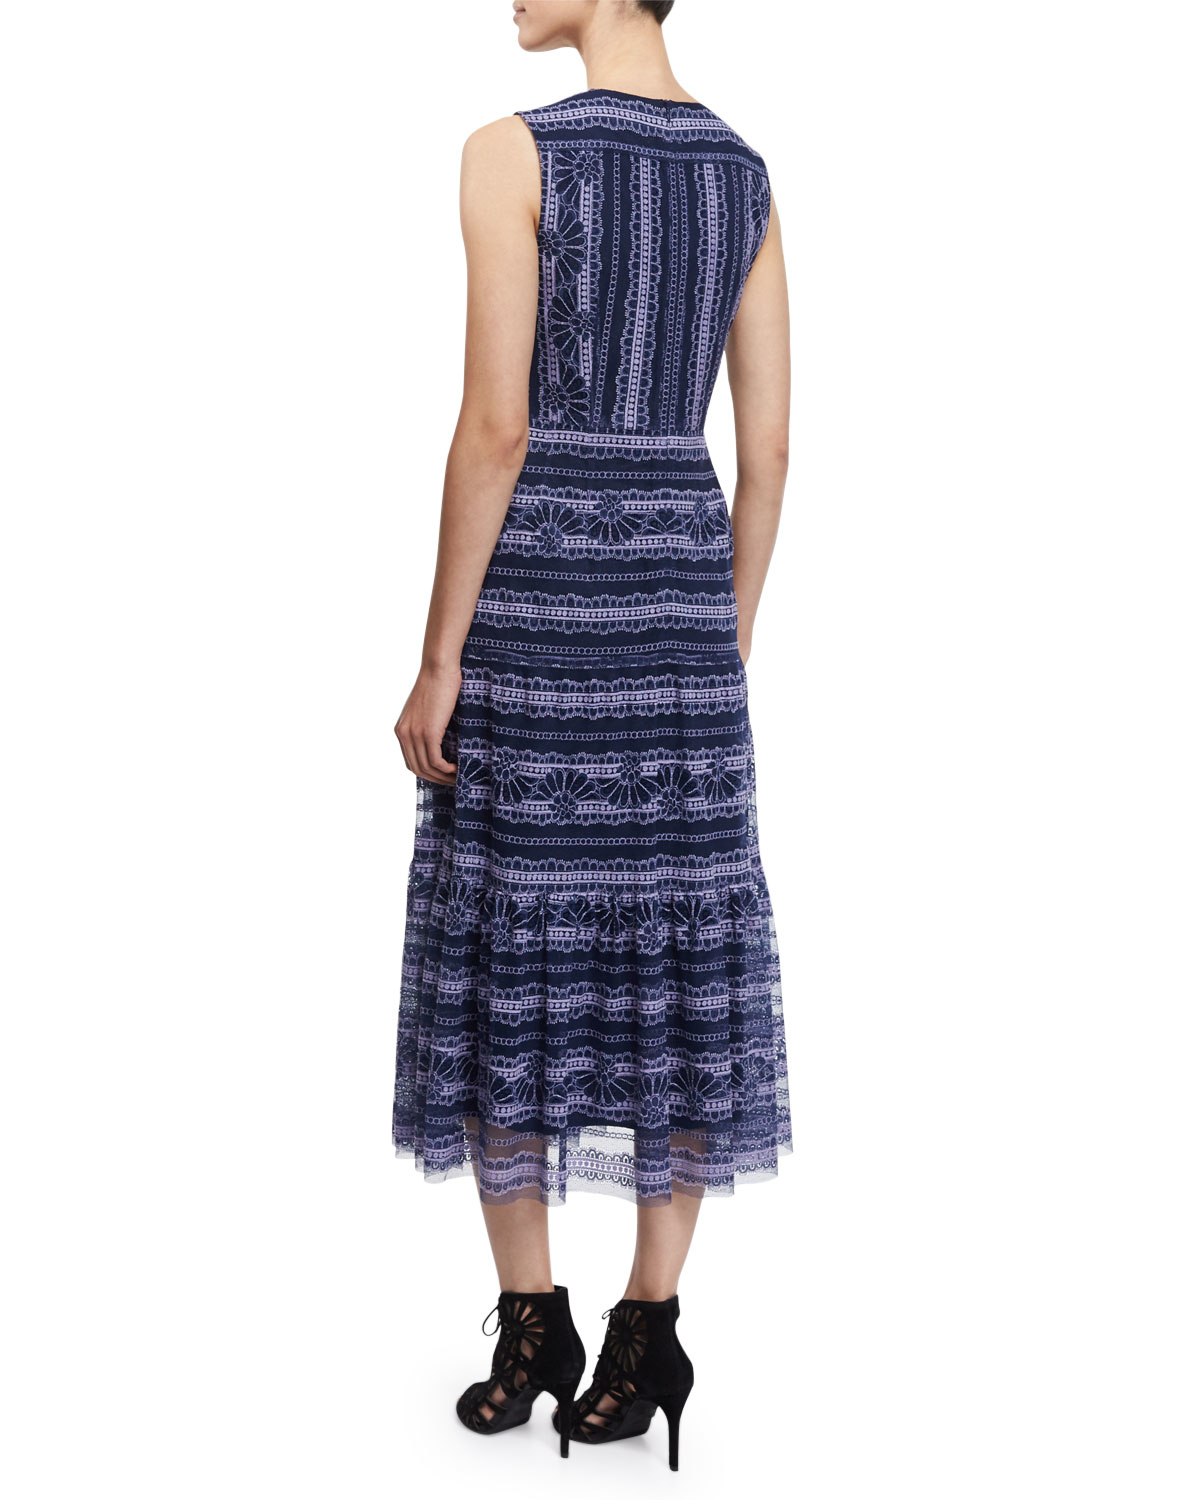 Nanette lepore sleeveless lace embroidered midi dress in